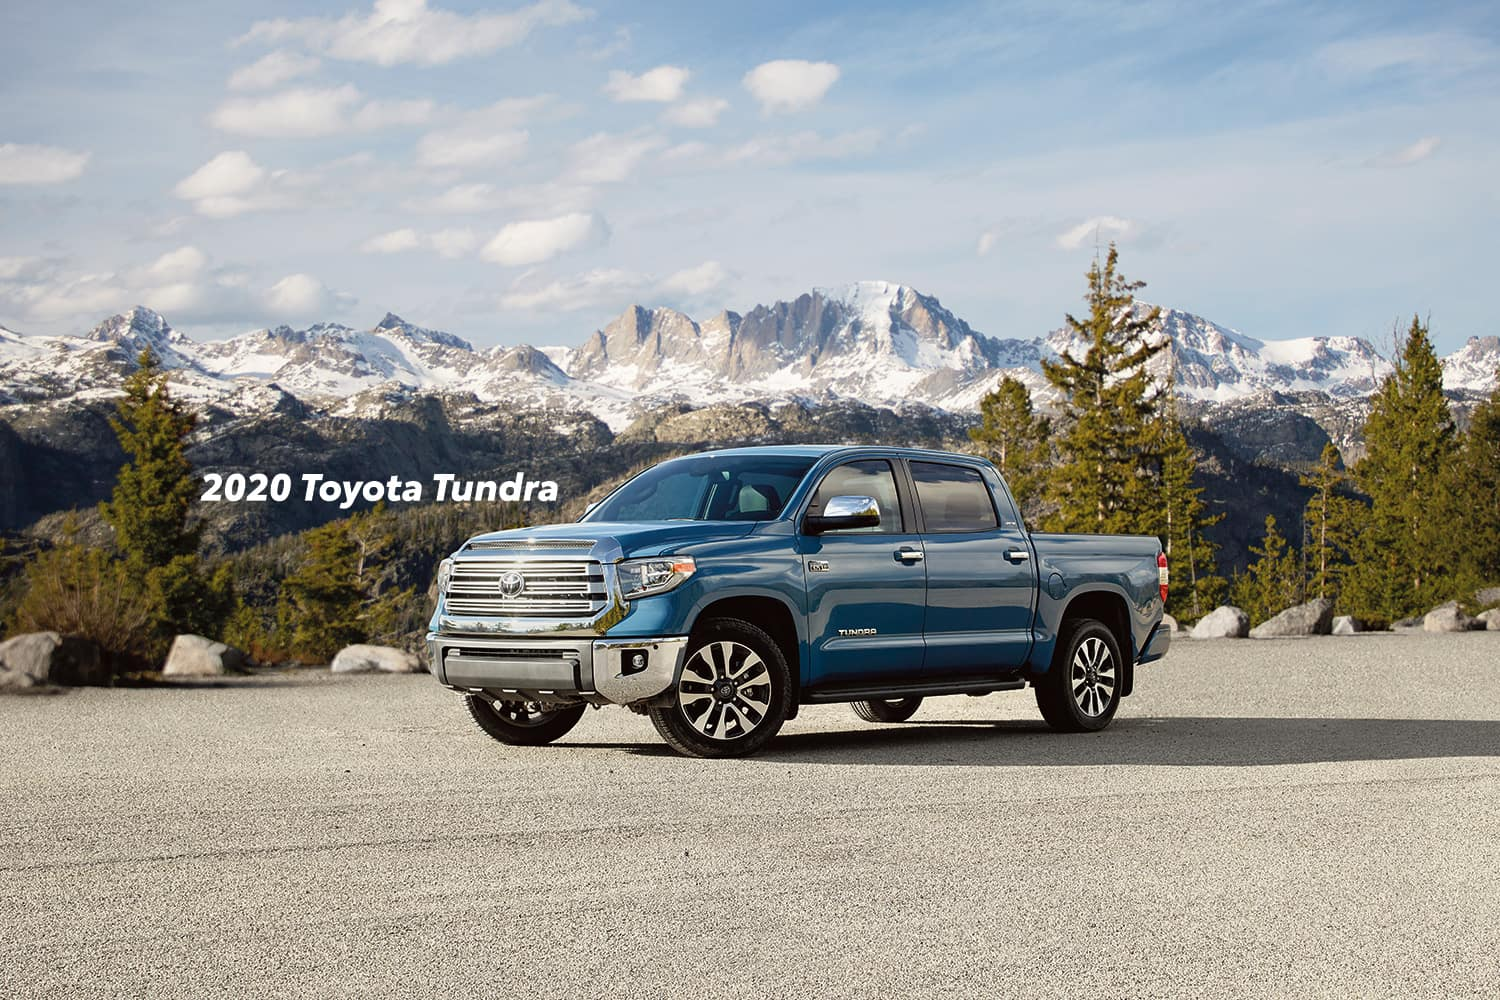 Comparison of the Toyota Tacoma vs. Tundra trucks at Lancaster Toyota of East Petersburg | Blue 2020 Toyota Tundra parked in a parking lot